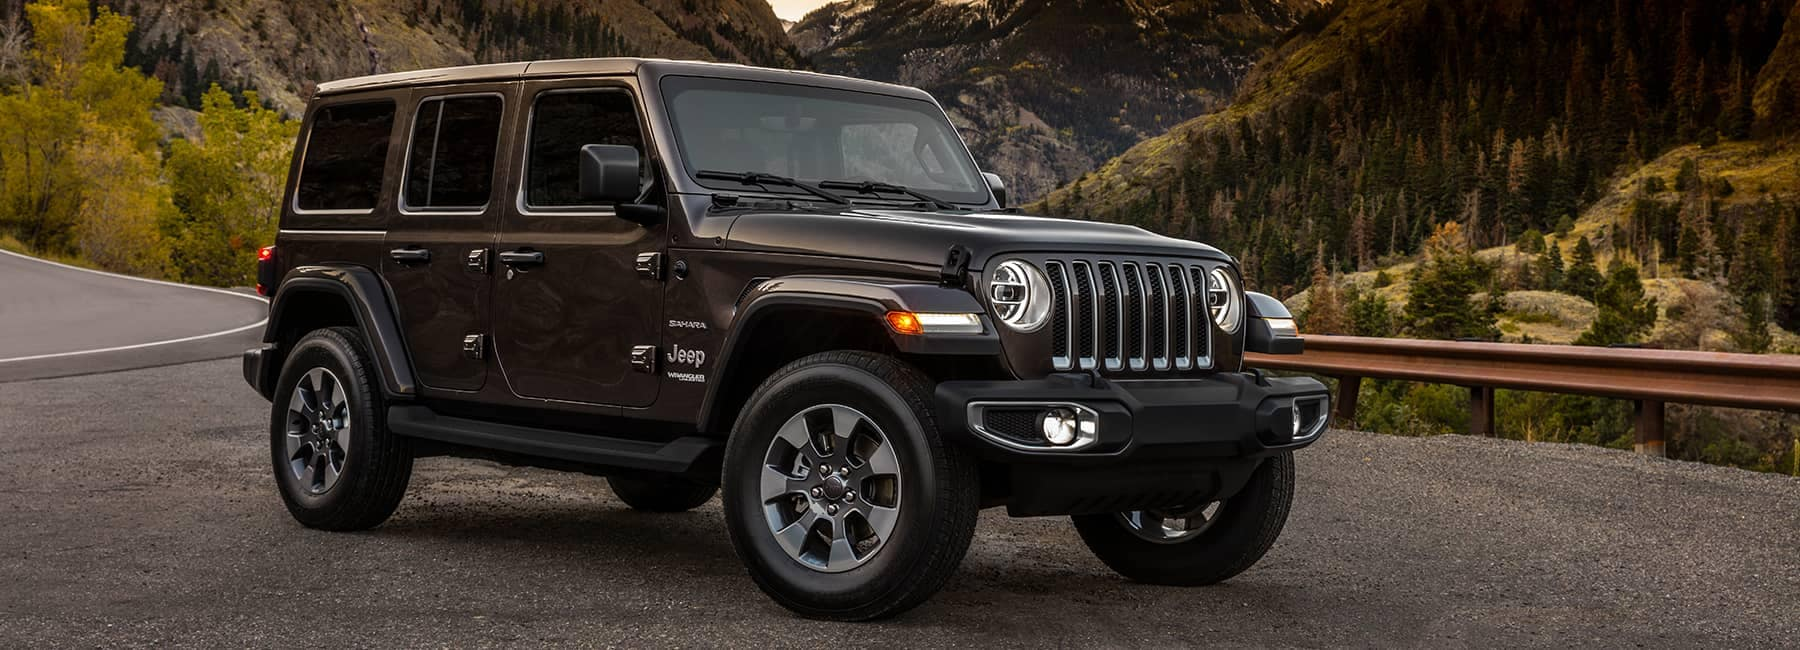 Schema Elettrico Wrangler Tj : Jeep wrangler atlanta ga ed voyles automotive group